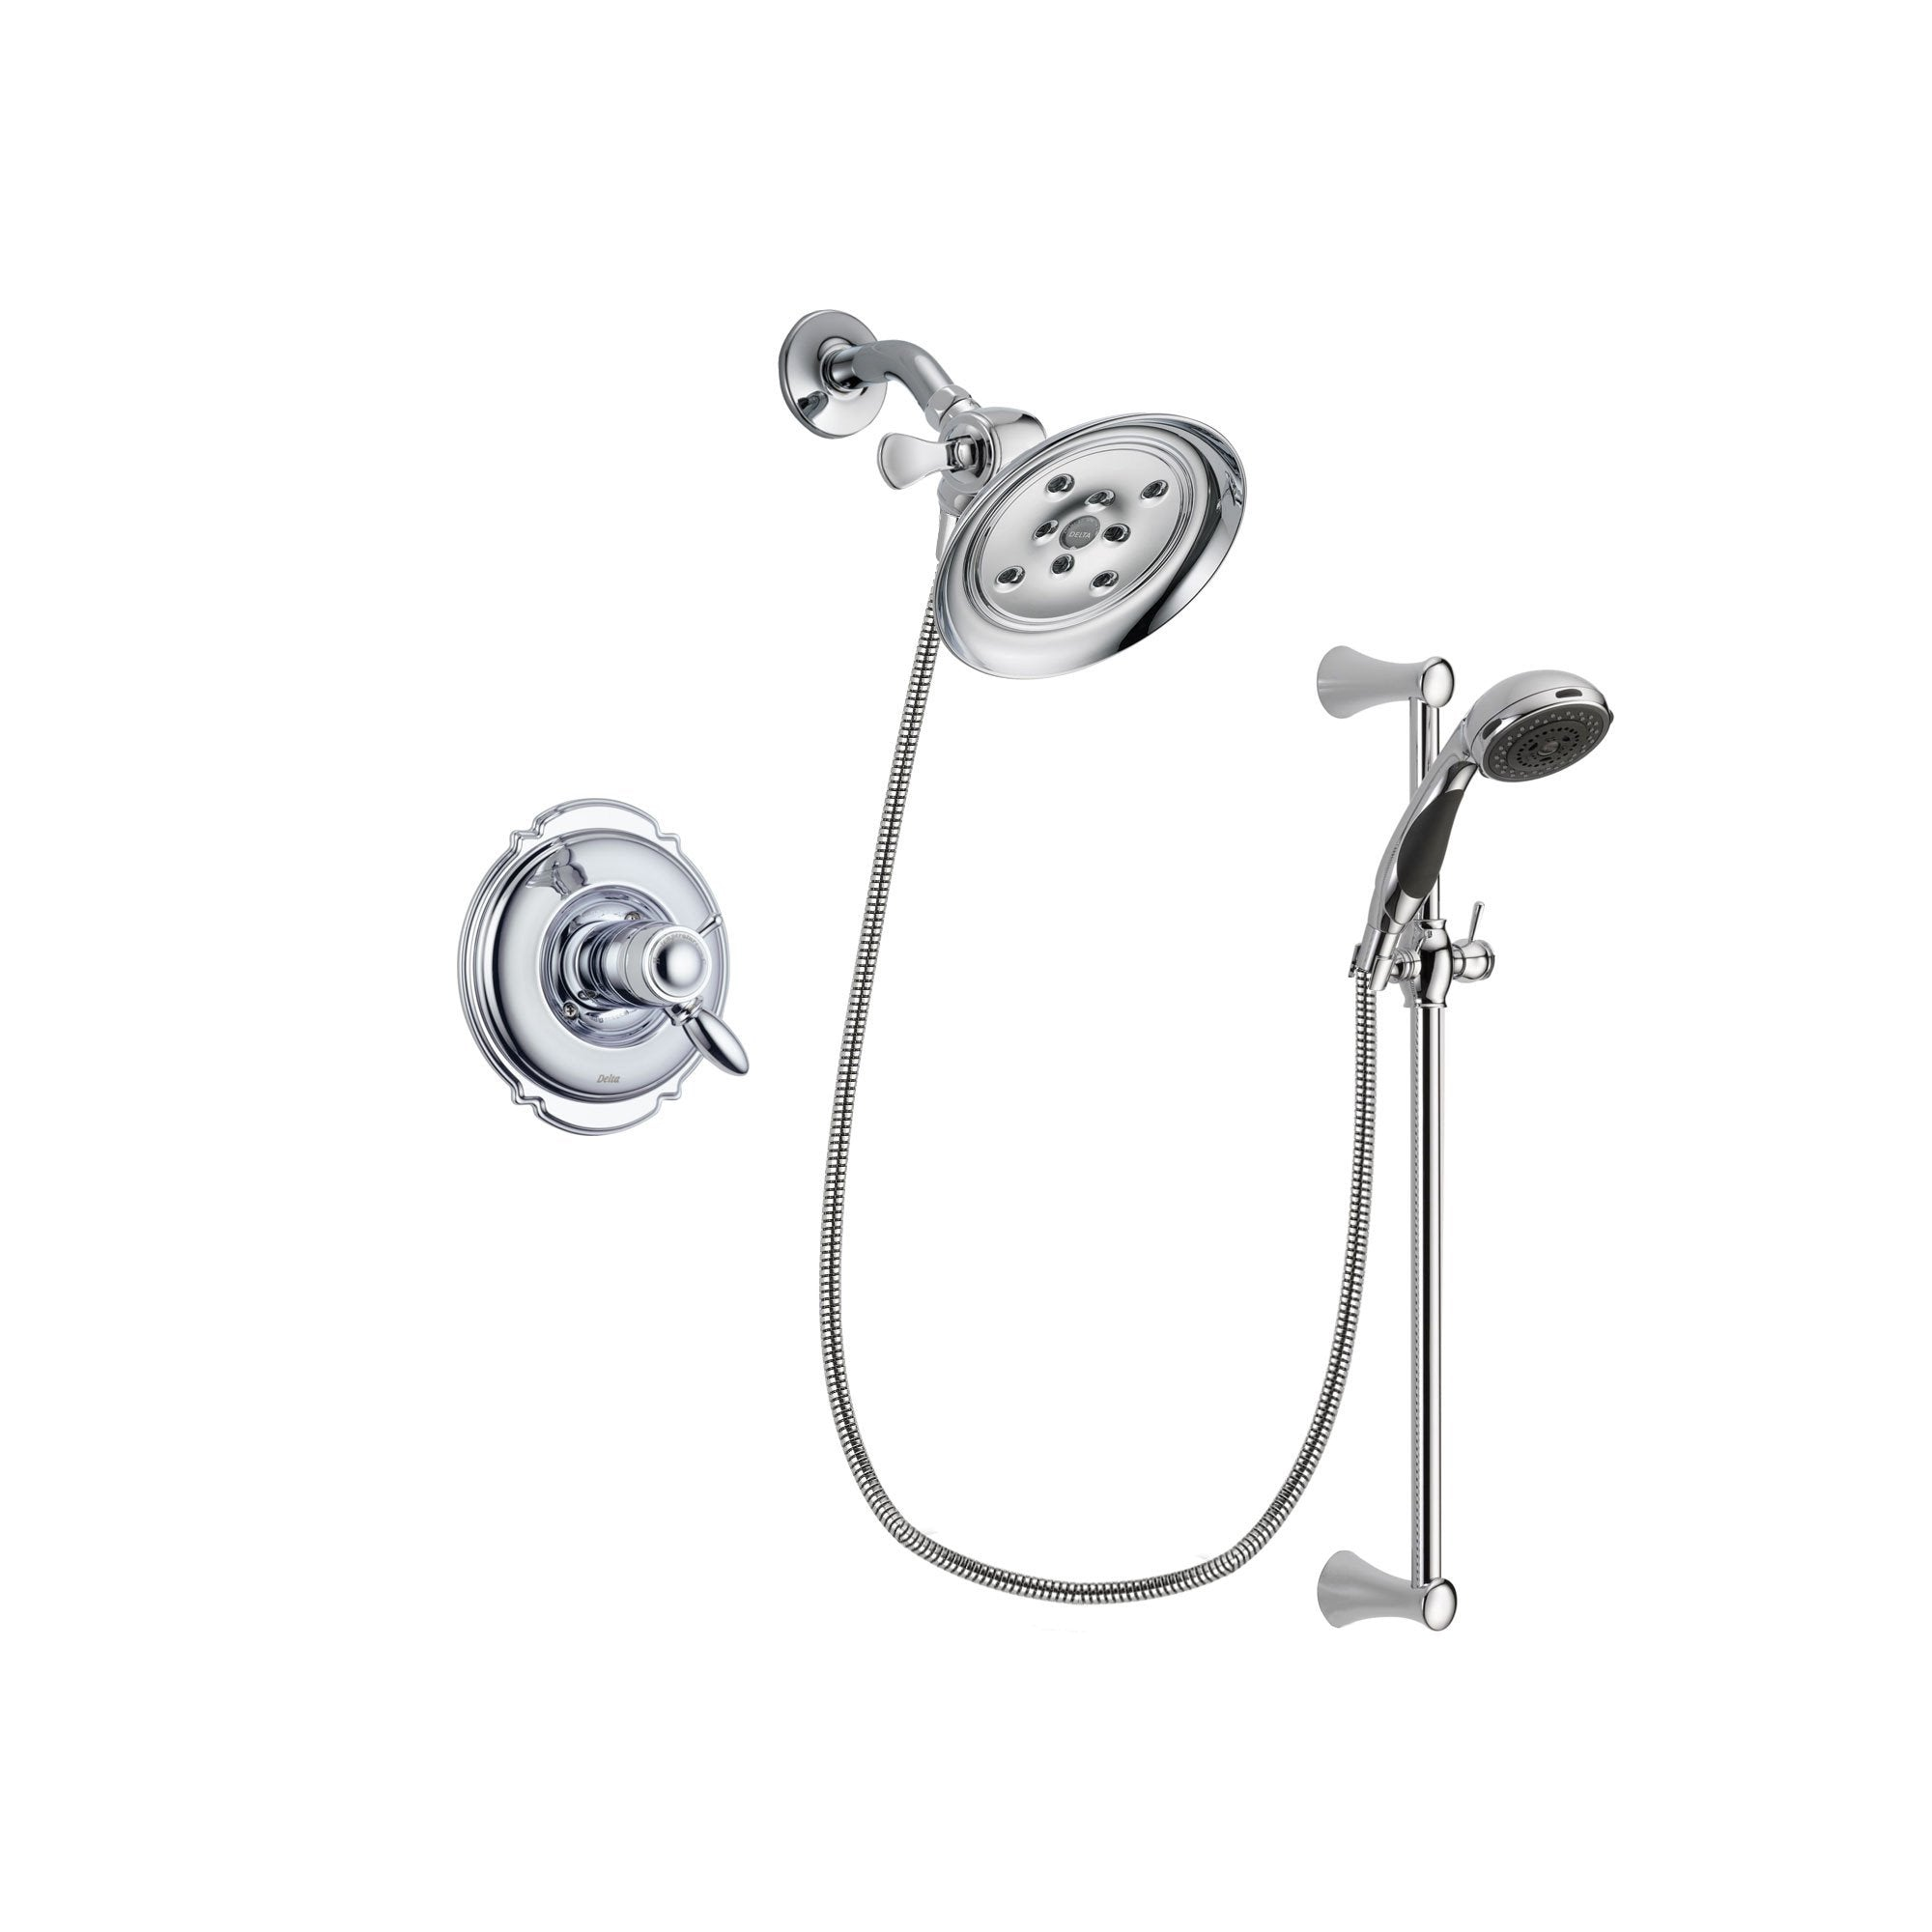 Delta Victorian Chrome Shower Faucet System Package with Hand Shower DSP0768V